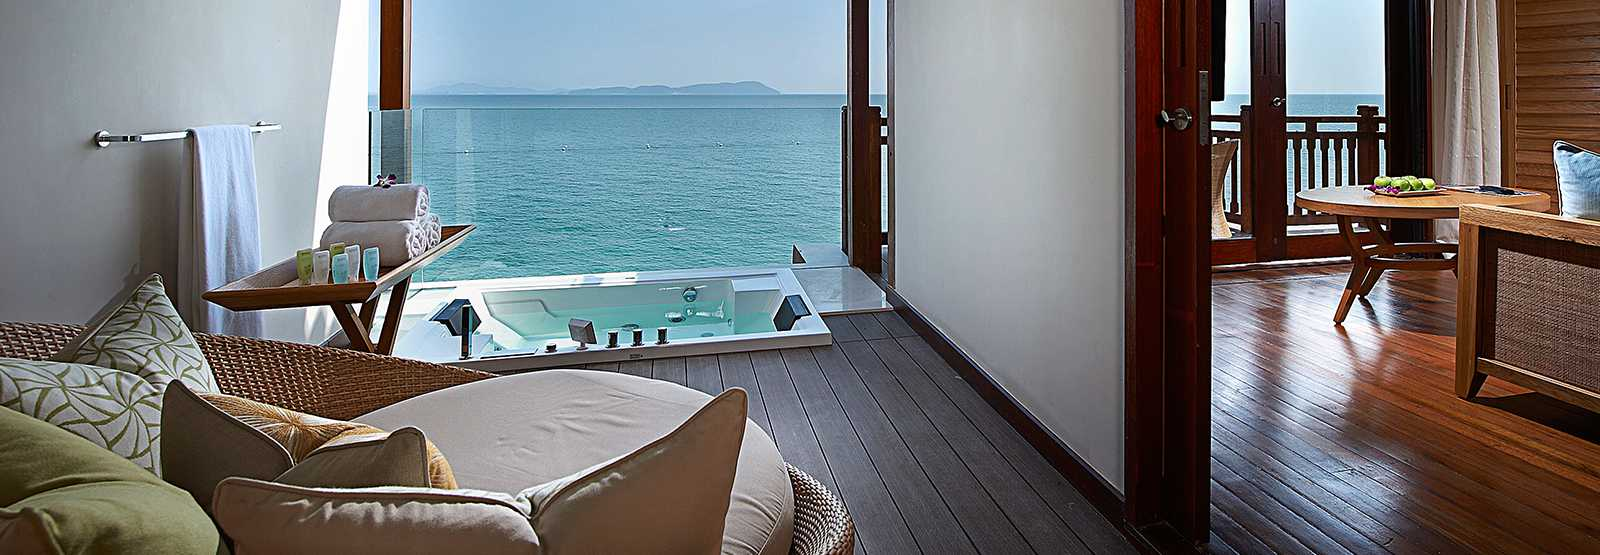 Hotels In Langkawi Island Premier Suite On Water